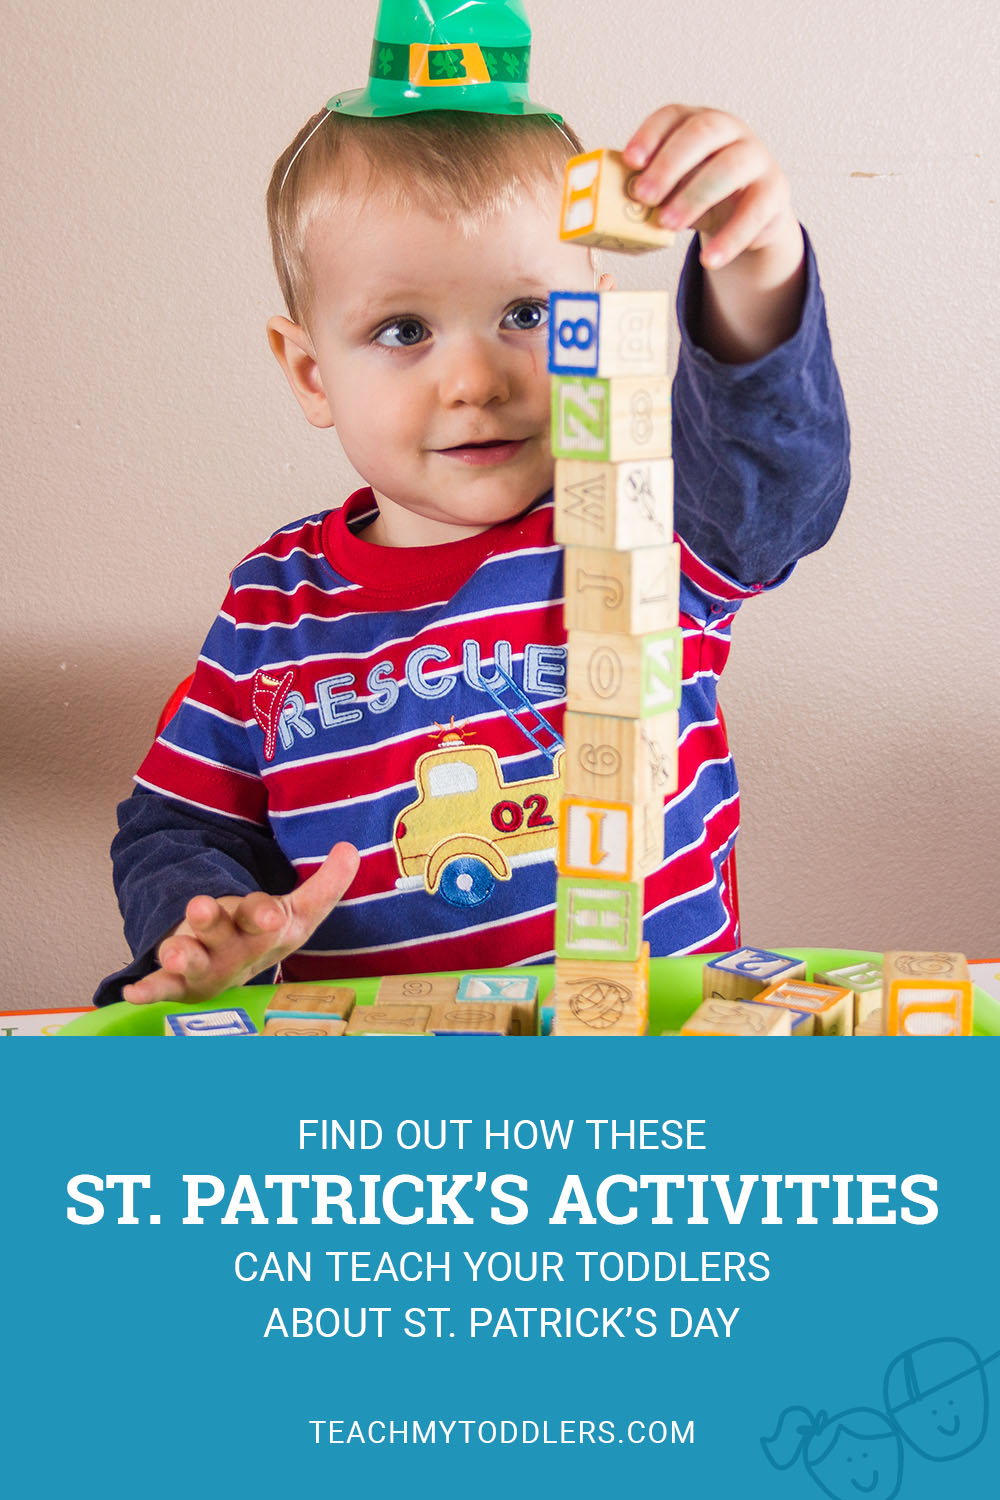 Find out how these St. Patrick's Day Activities can teach toddlers about St. Patrick's Day